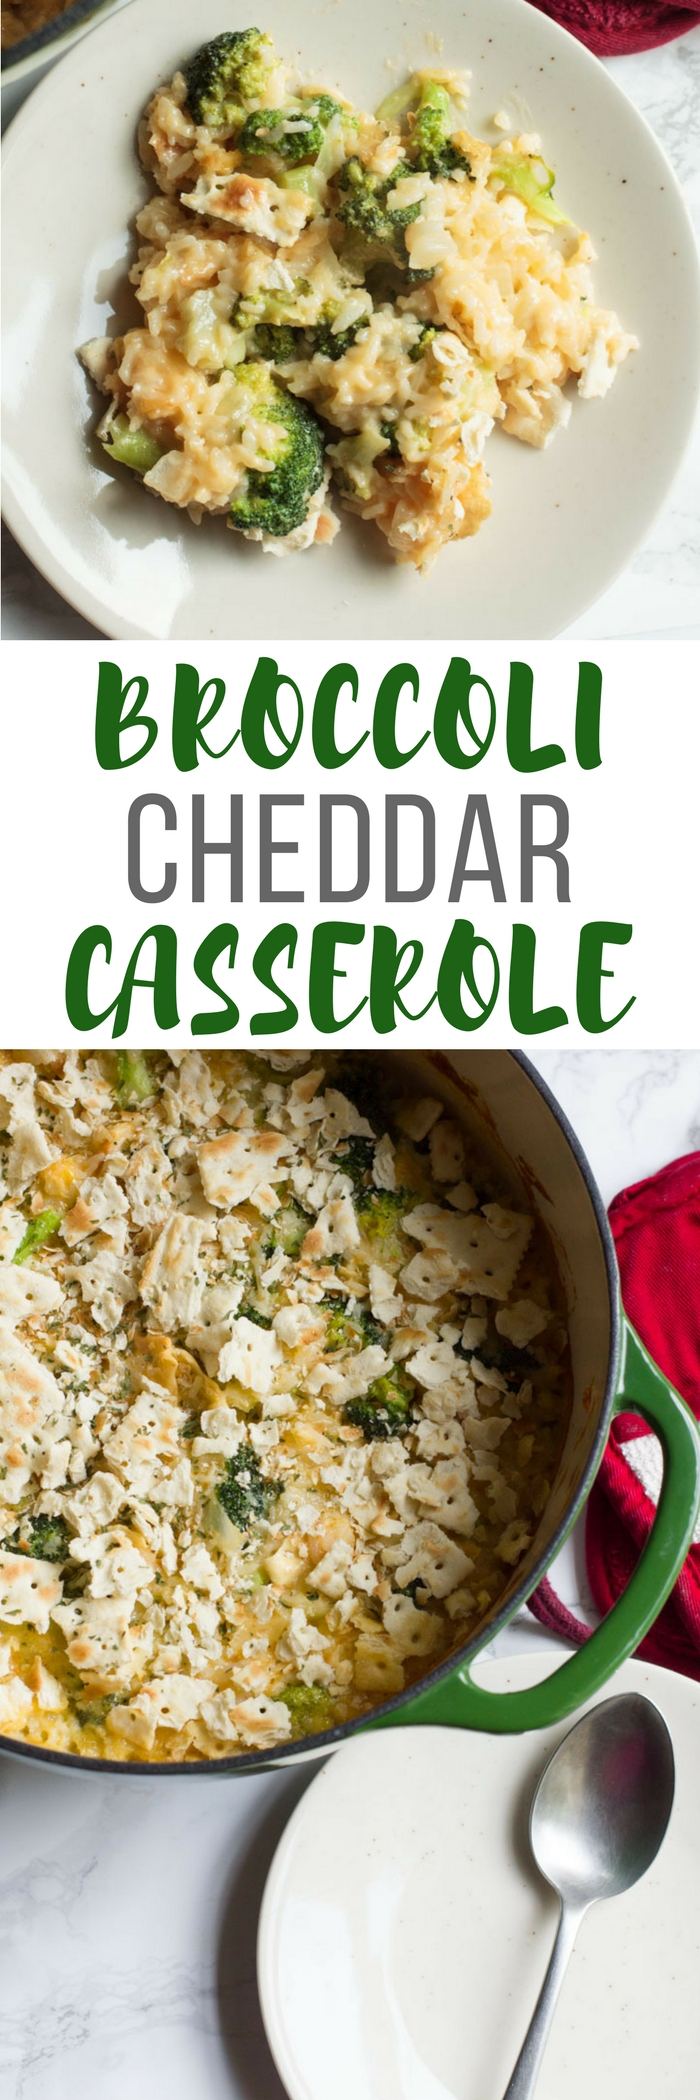 Broccoli Cheddar Casserole is a family favorite - perfect for a weeknight or as a holiday side. Copycat Cheddars recipe.